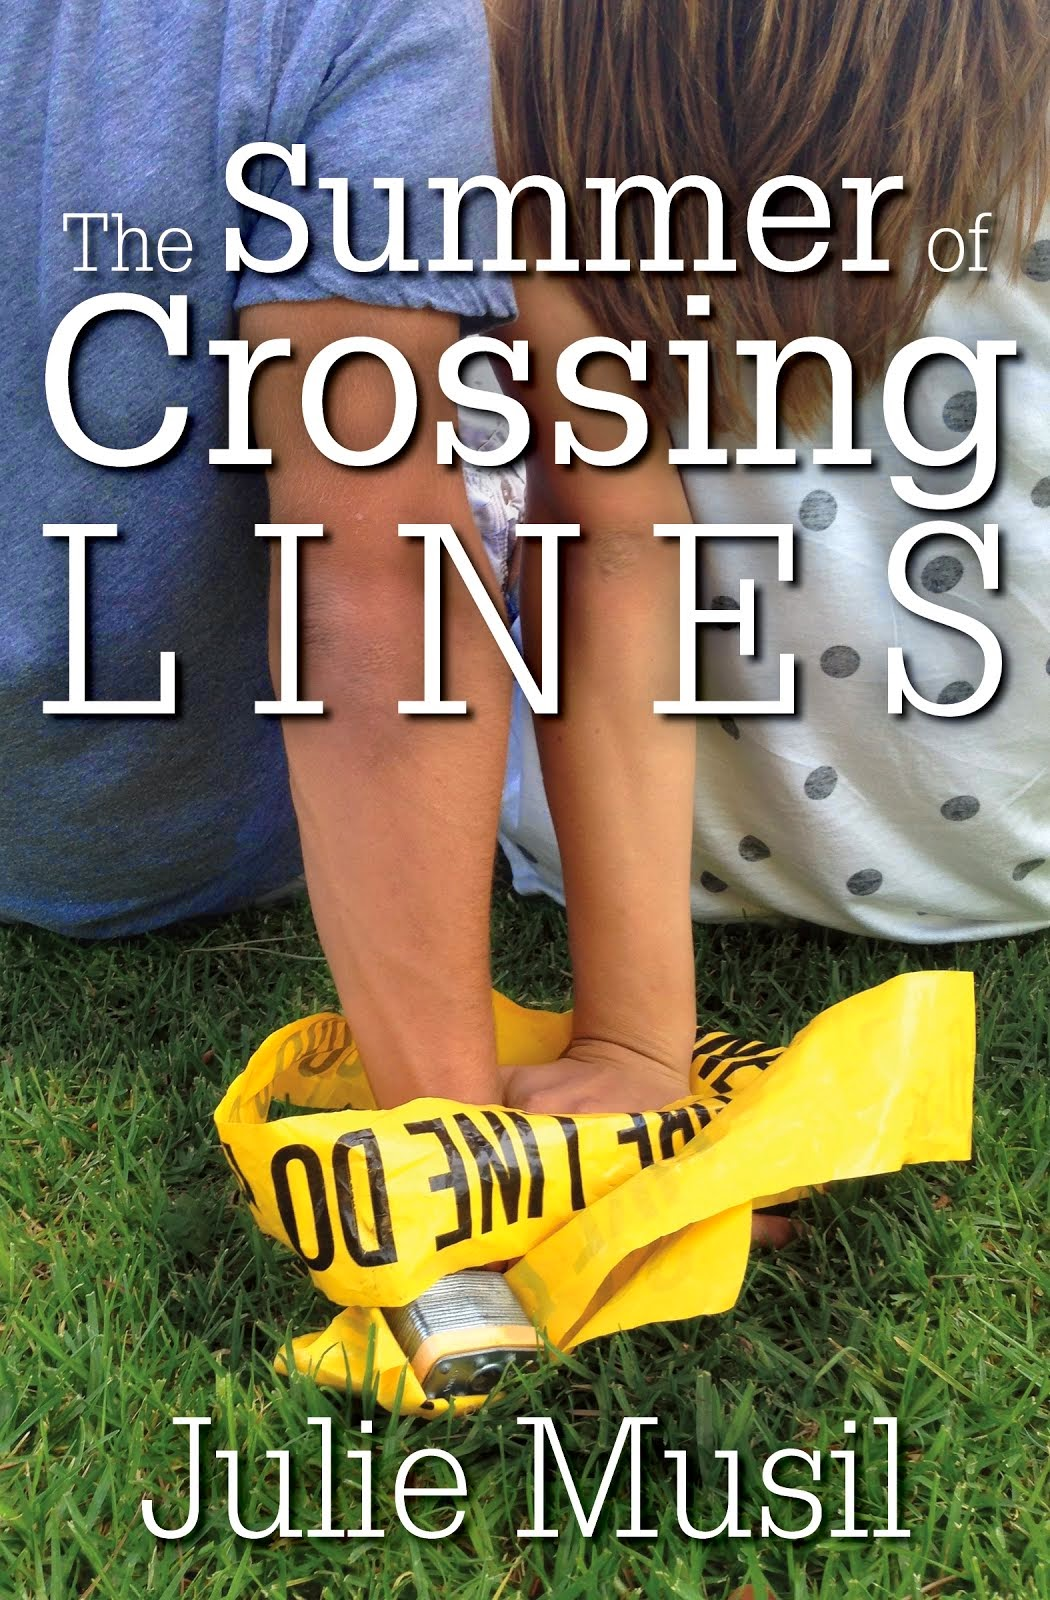 Available now! The Summer of Crossing Lines